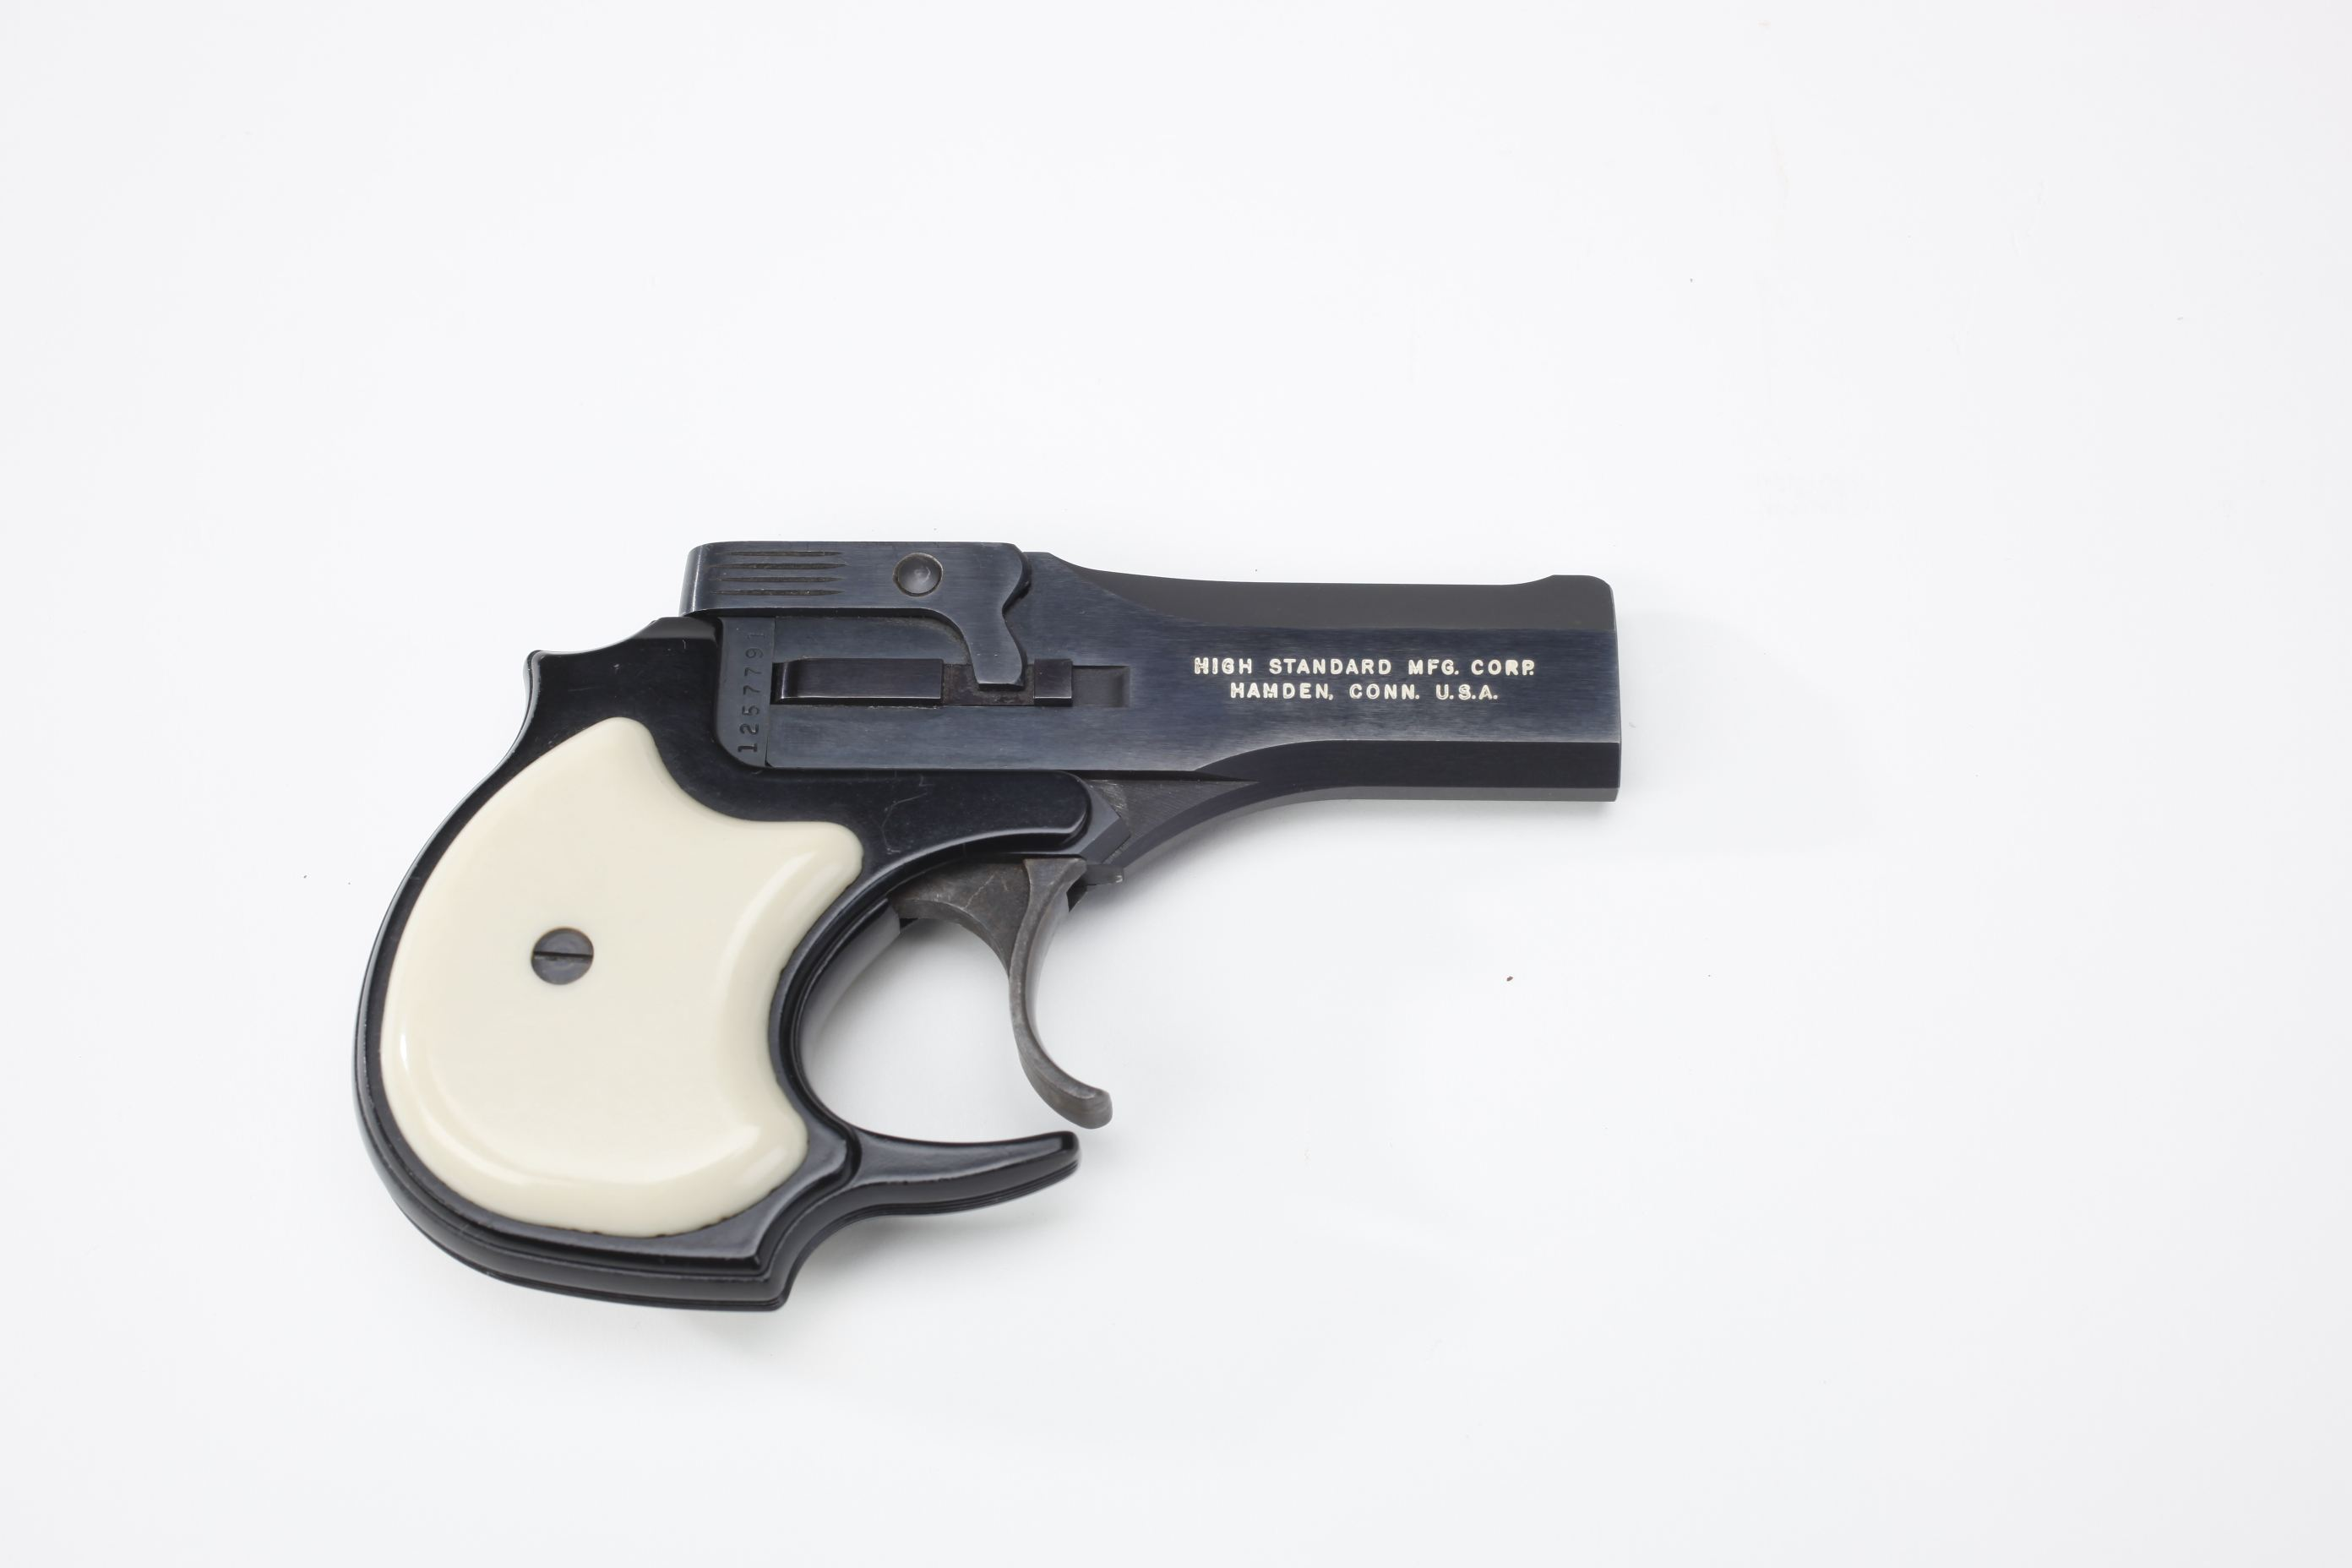 High Standard Model D 100 Derringer